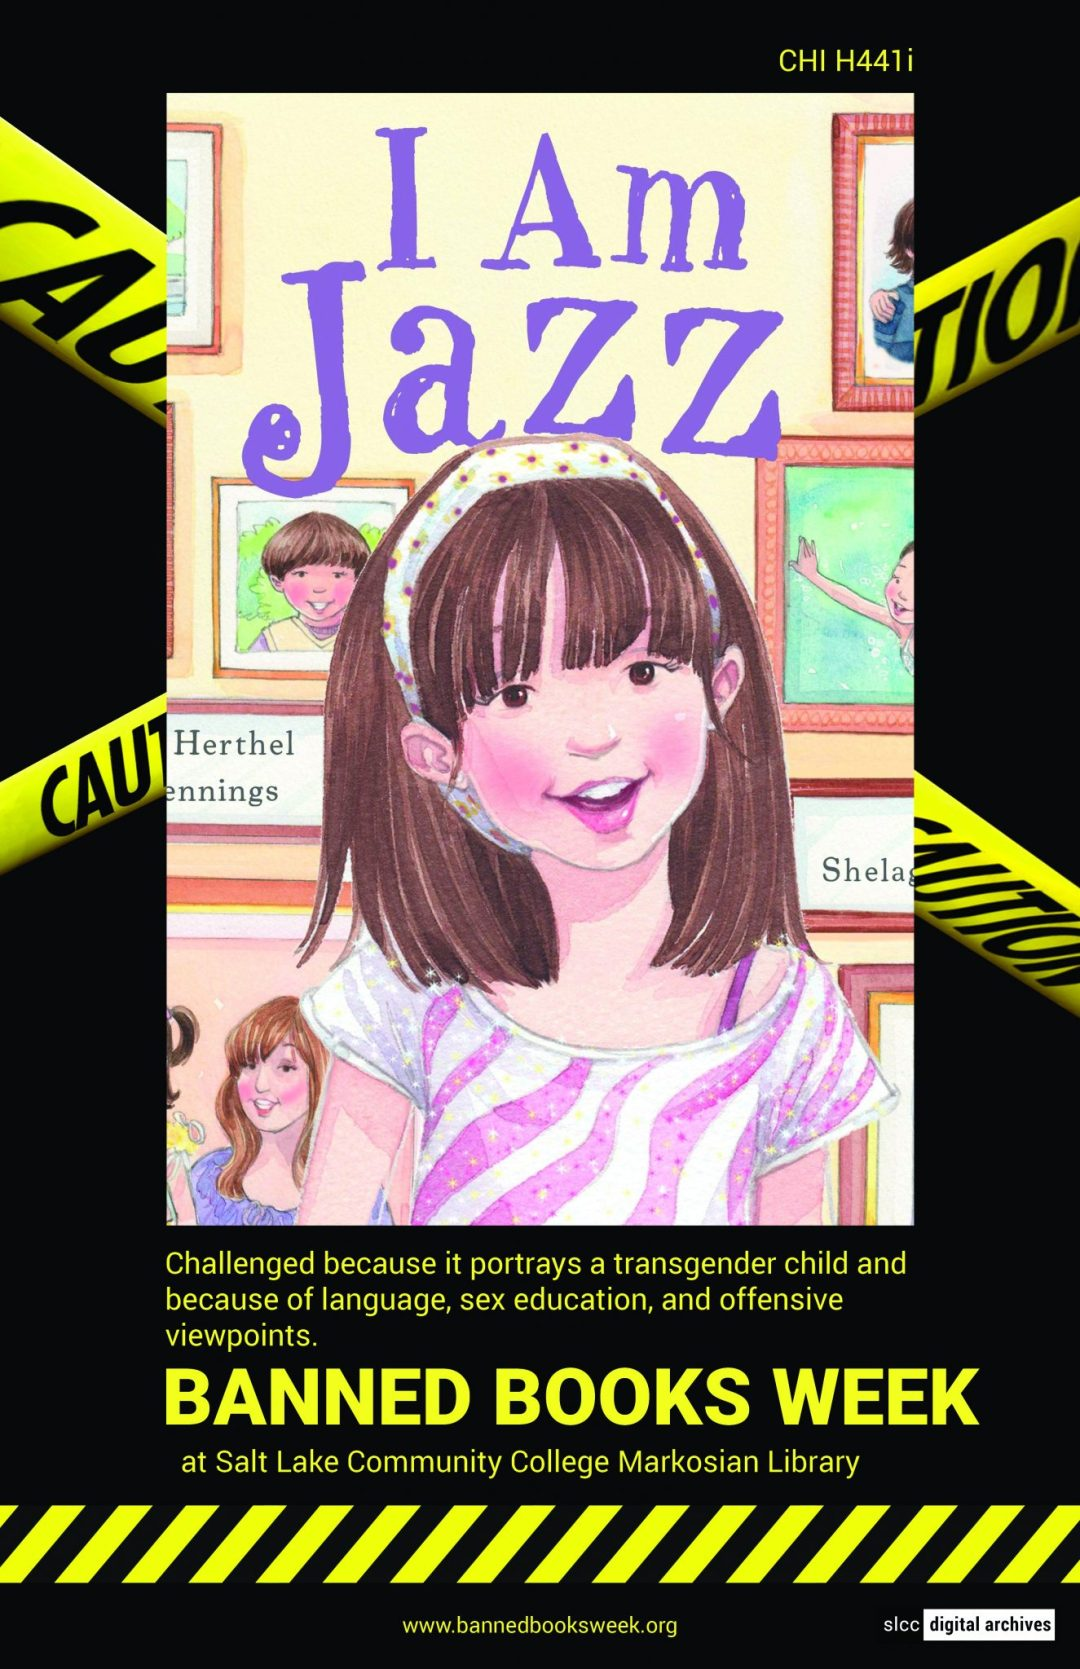 Banned Books Week Poster: I am Jazz by Jessica Herthel and Jazz Jennings